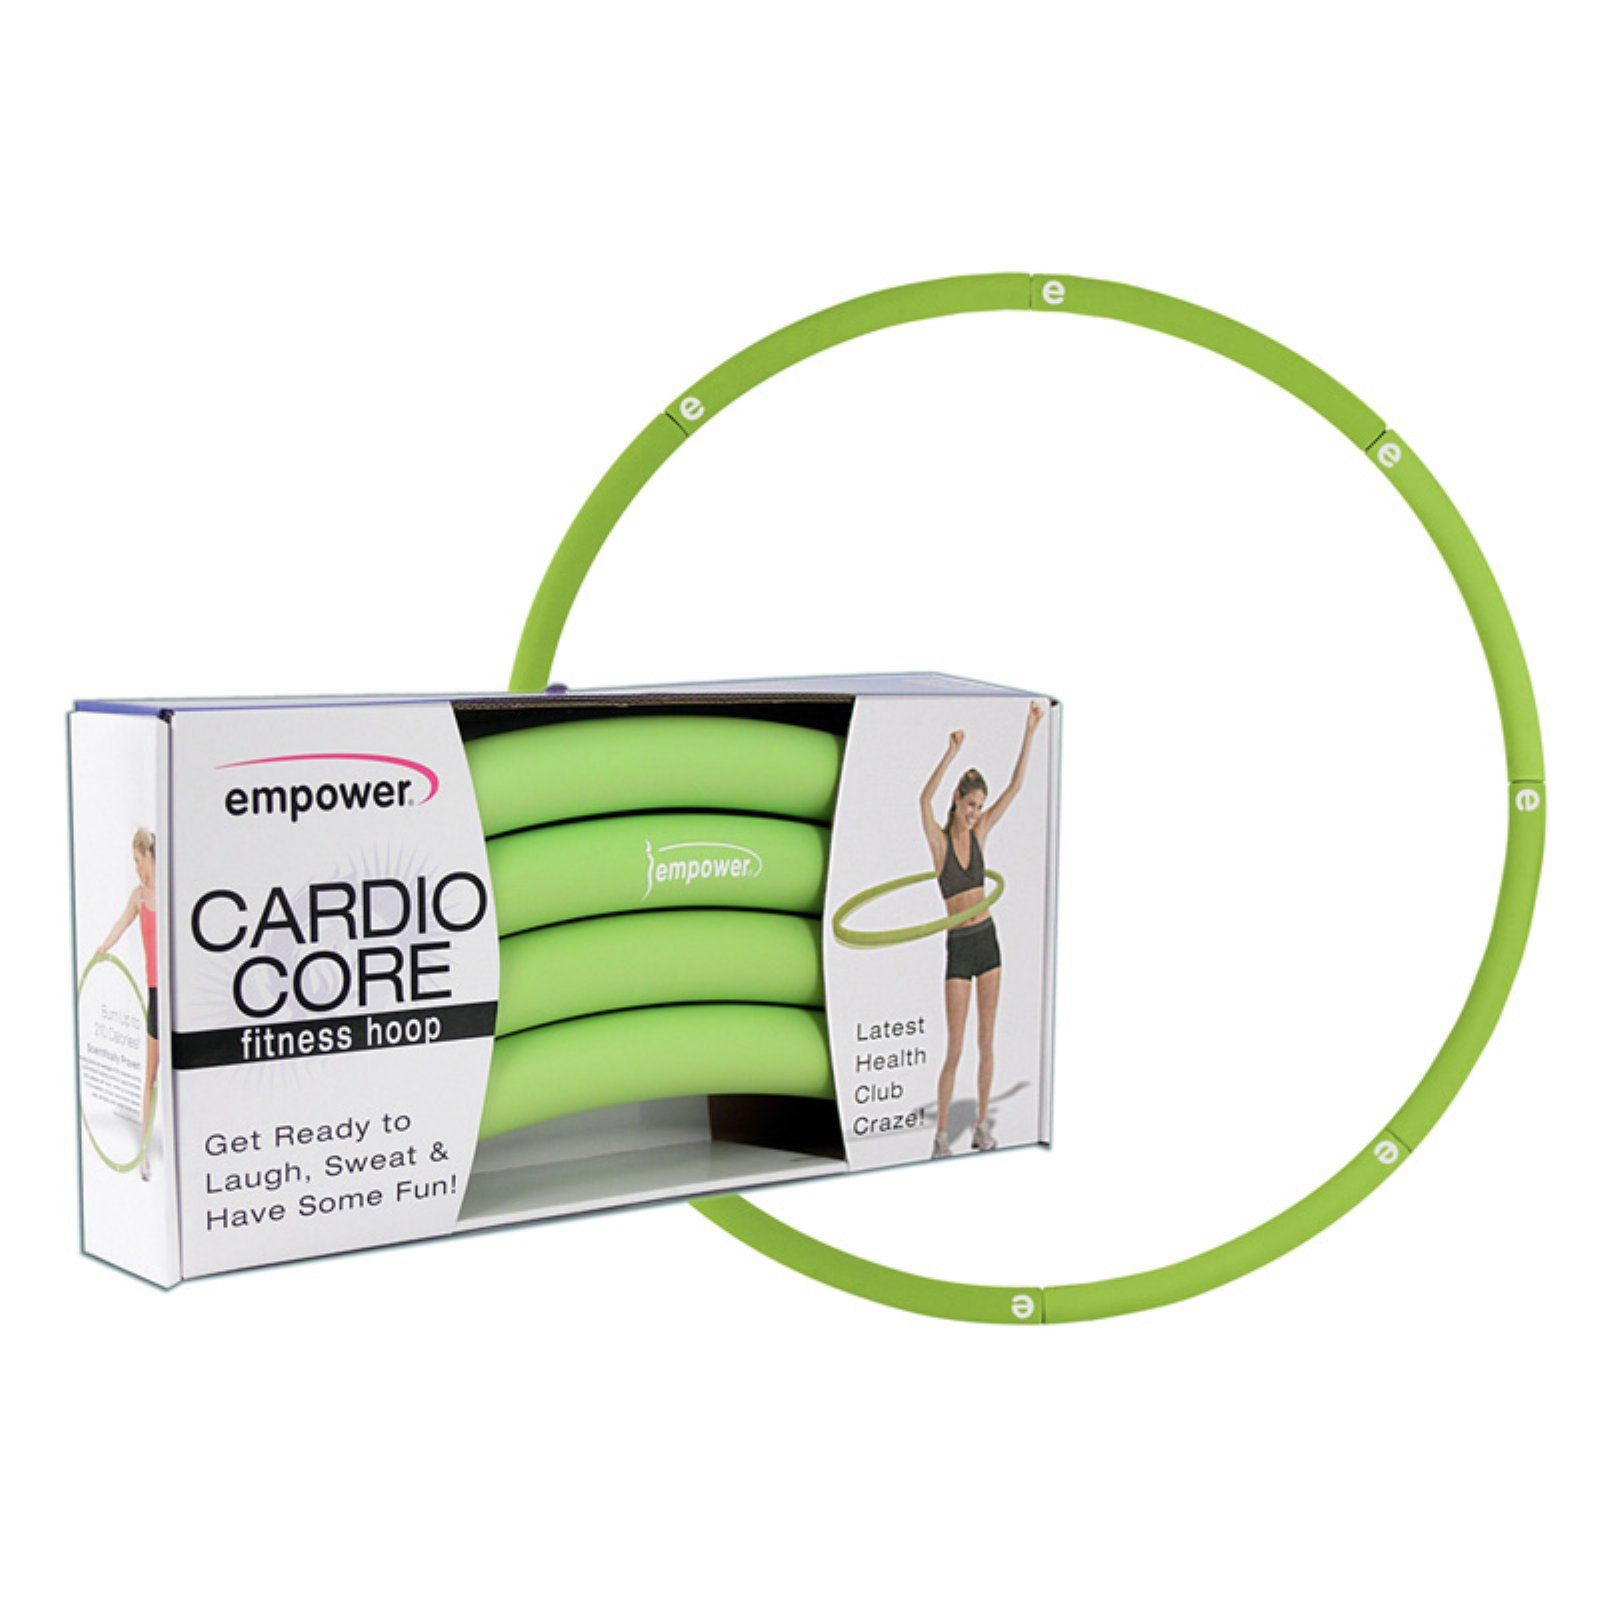 Empower Cardio Core Fitness Hoop with Chart